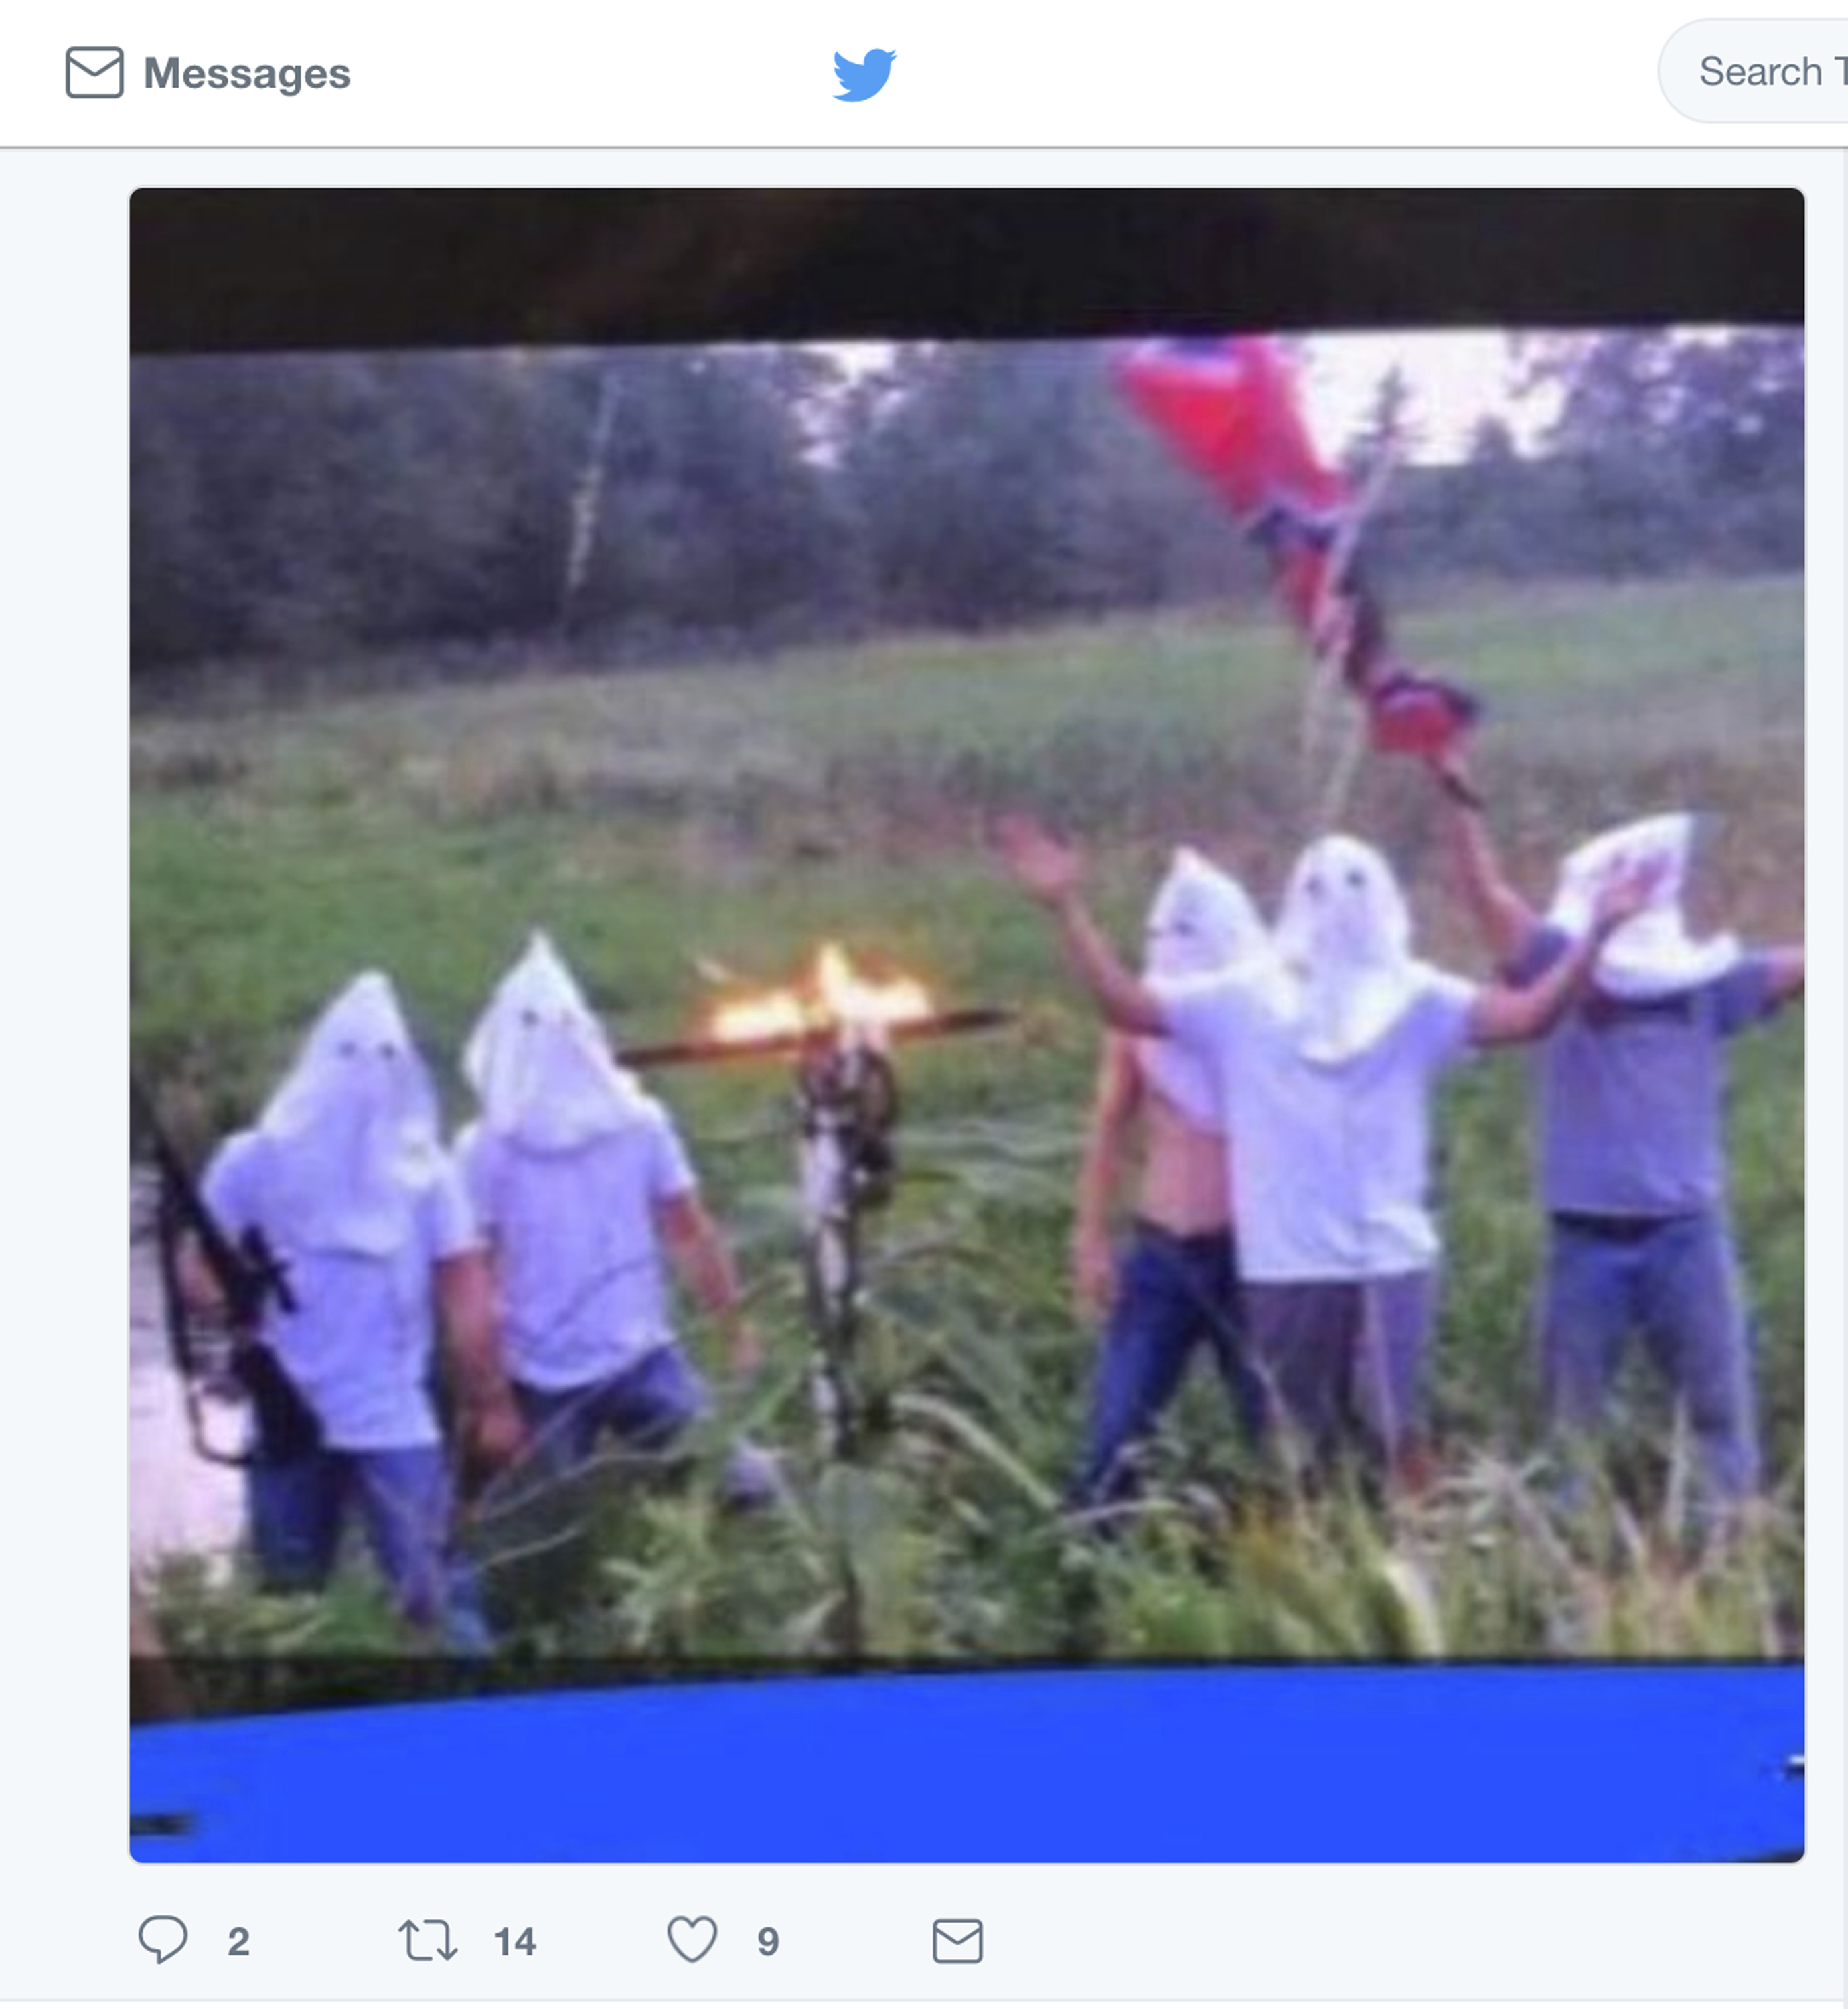 In this screen shot image taken from Twitter, five men wearing white hoods wave a Confederate flag next to a burning cross. The principal of Creston Community High School in southern Iowa says the school has disciplined several students who appeared in the photo, which circulated on social media, after officials became aware of it on Wednesday morning, Sept. 6, 2017.